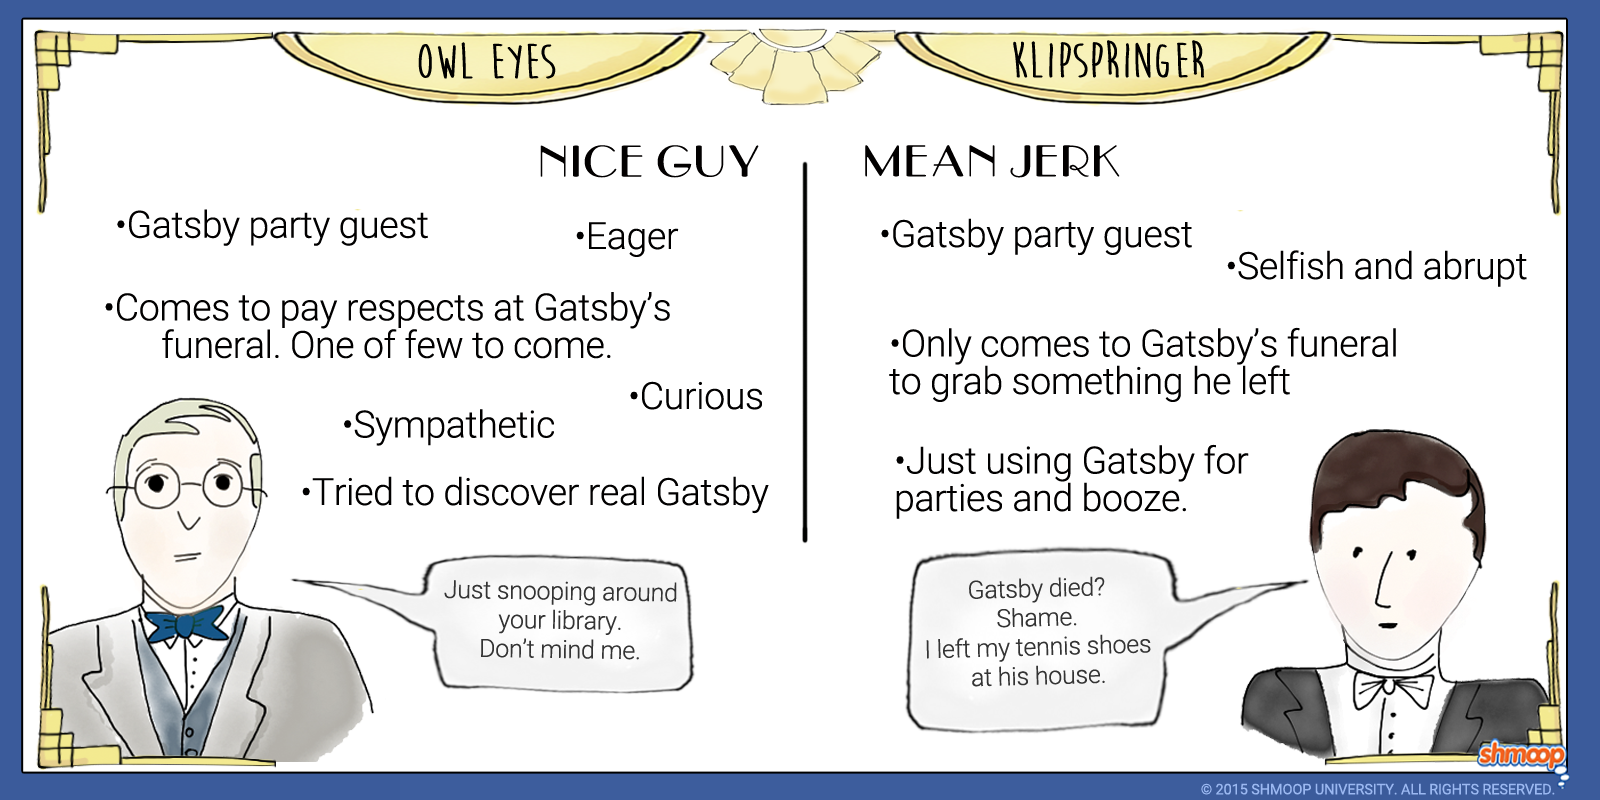 owl eyes and klipspringer in the great gatsby chart owl eyes and klipspringer